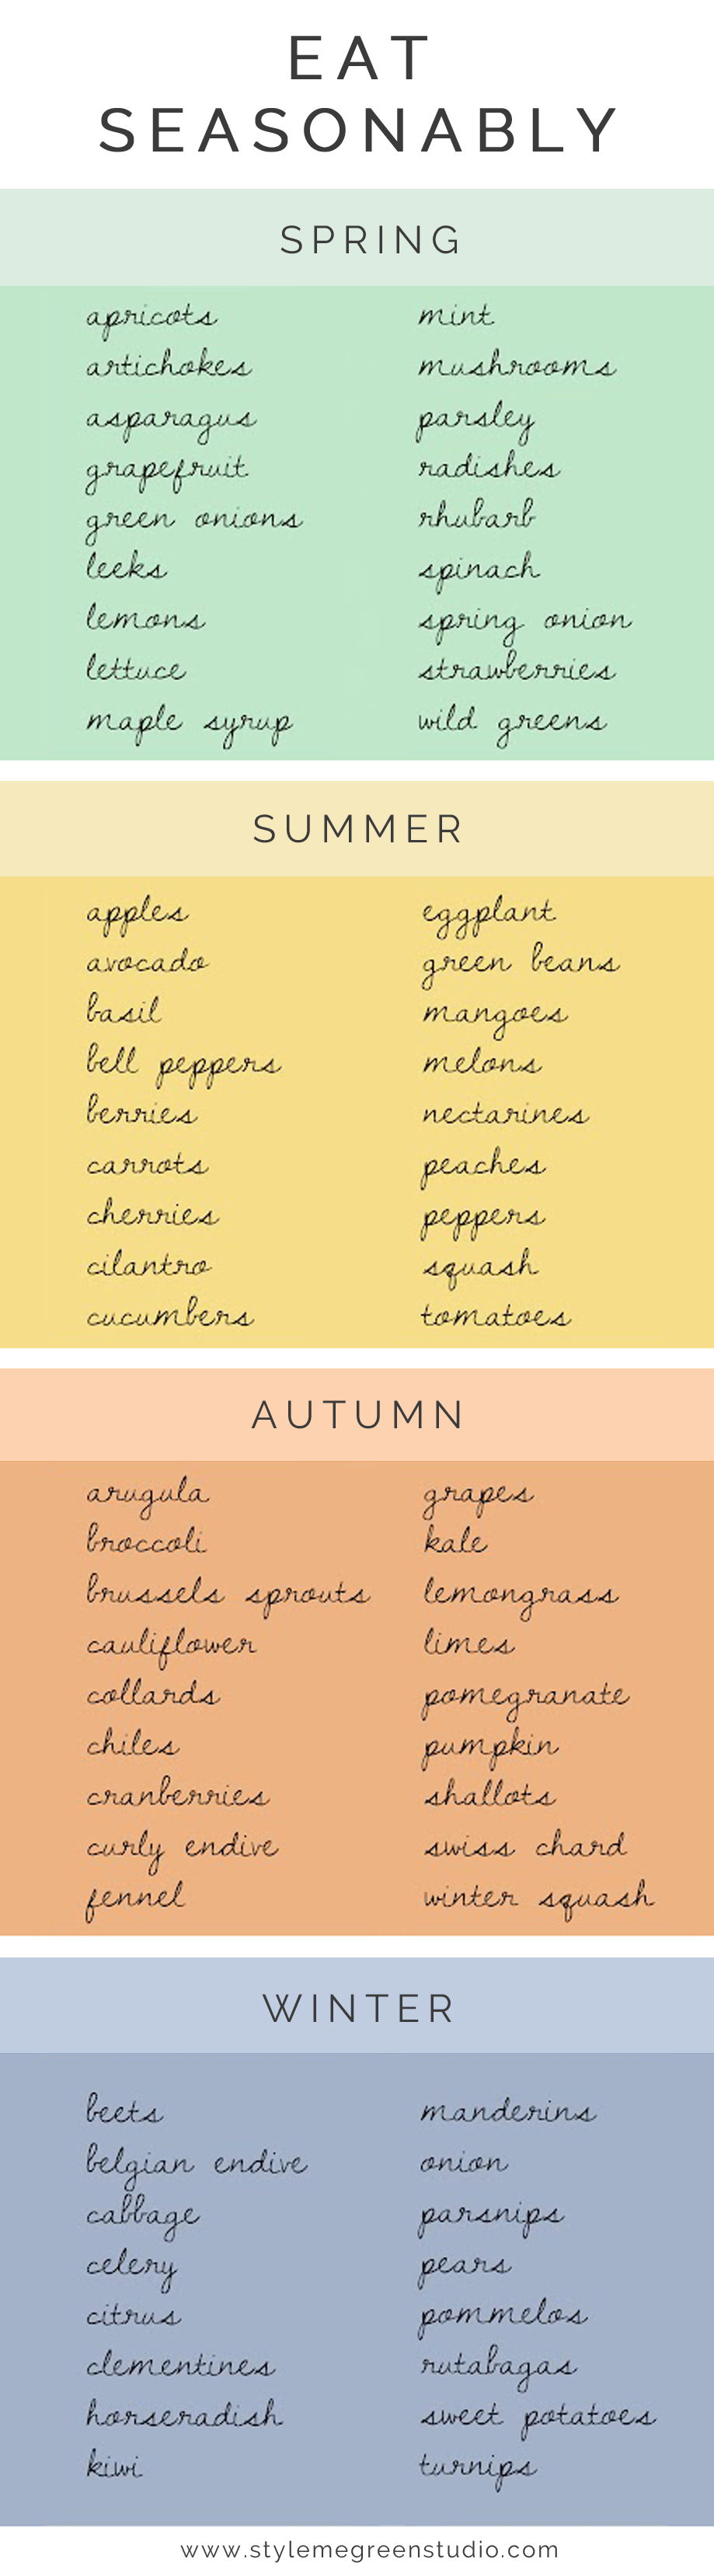 fruits and veggies in season all year round